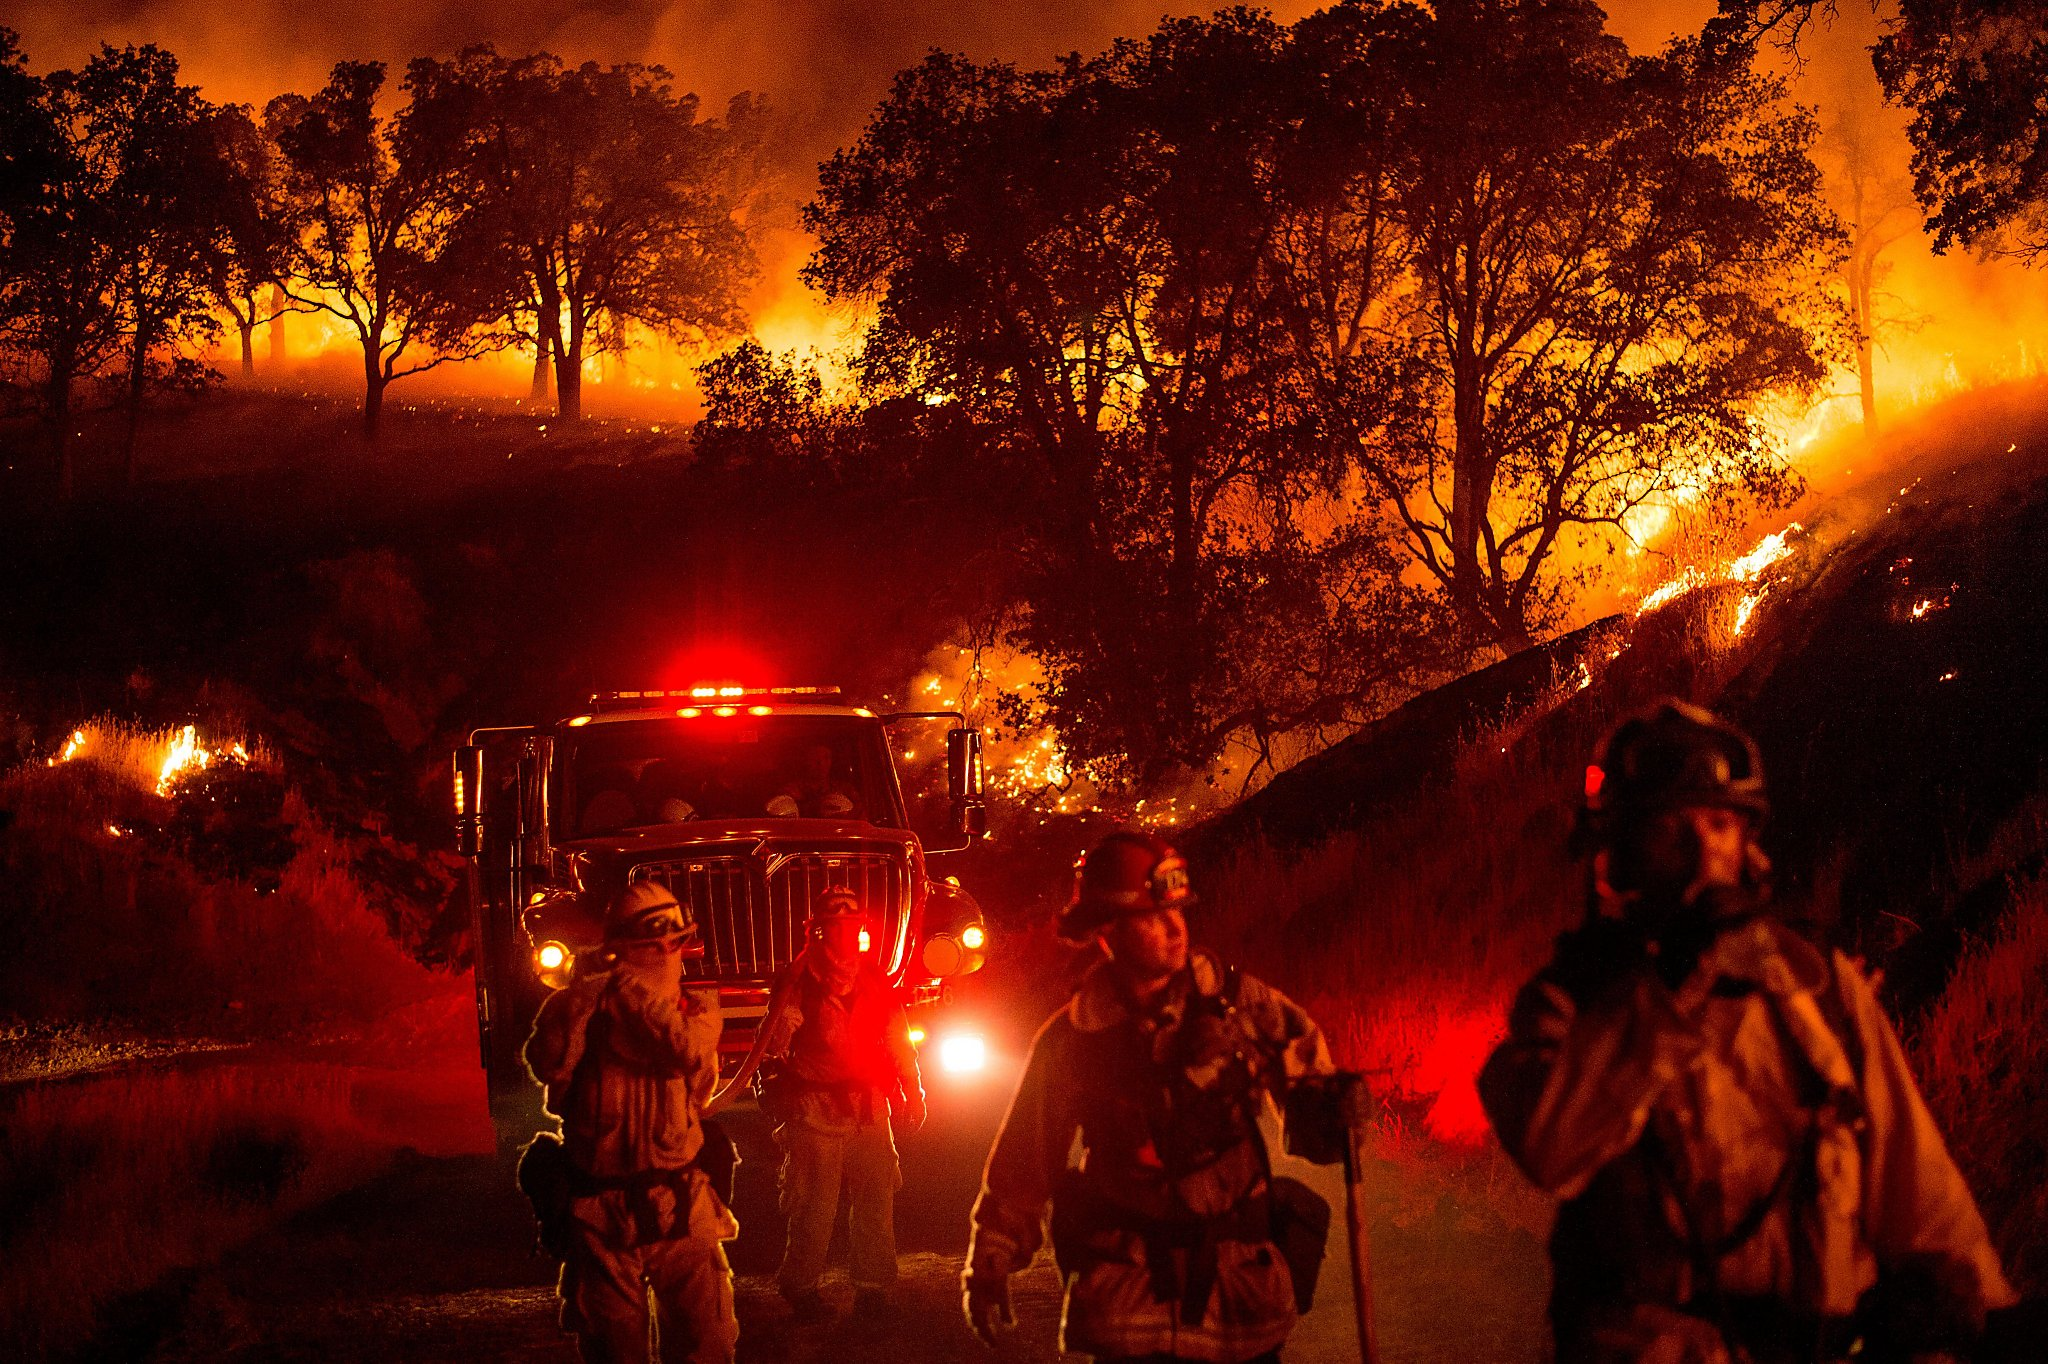 firefighting is too costly  innovation is needed now